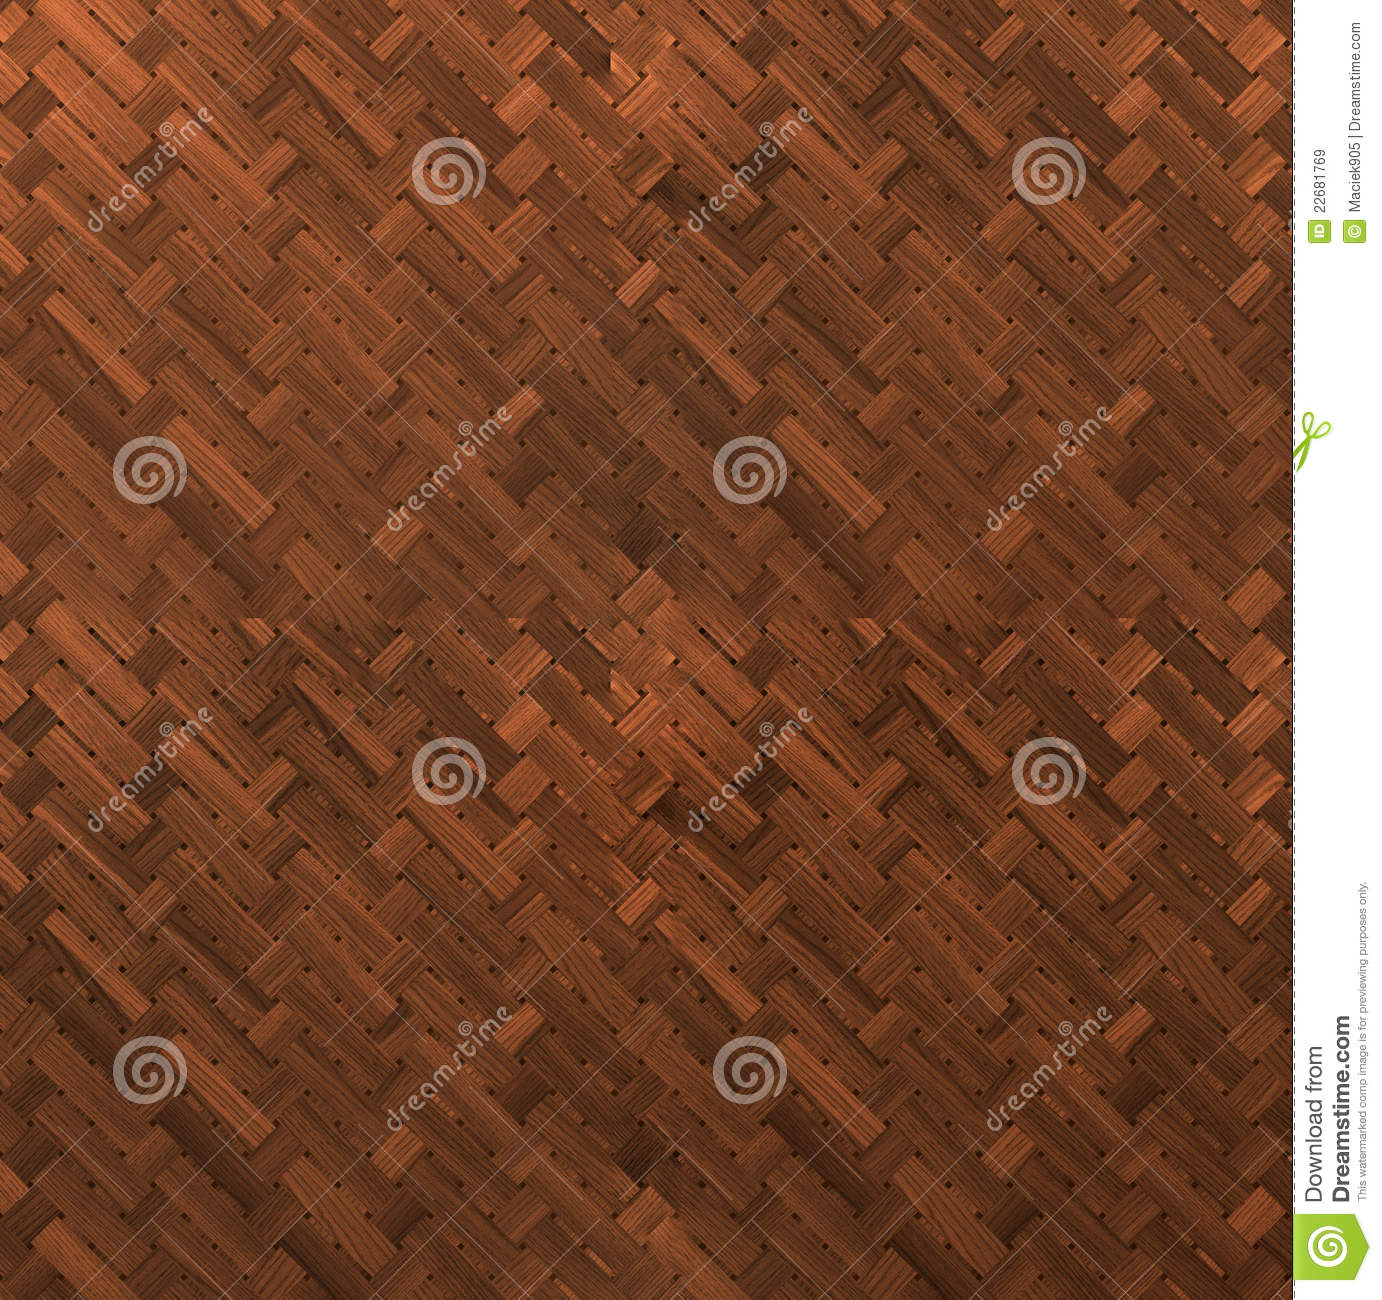 wooden tiles floor texture royalty free stock images